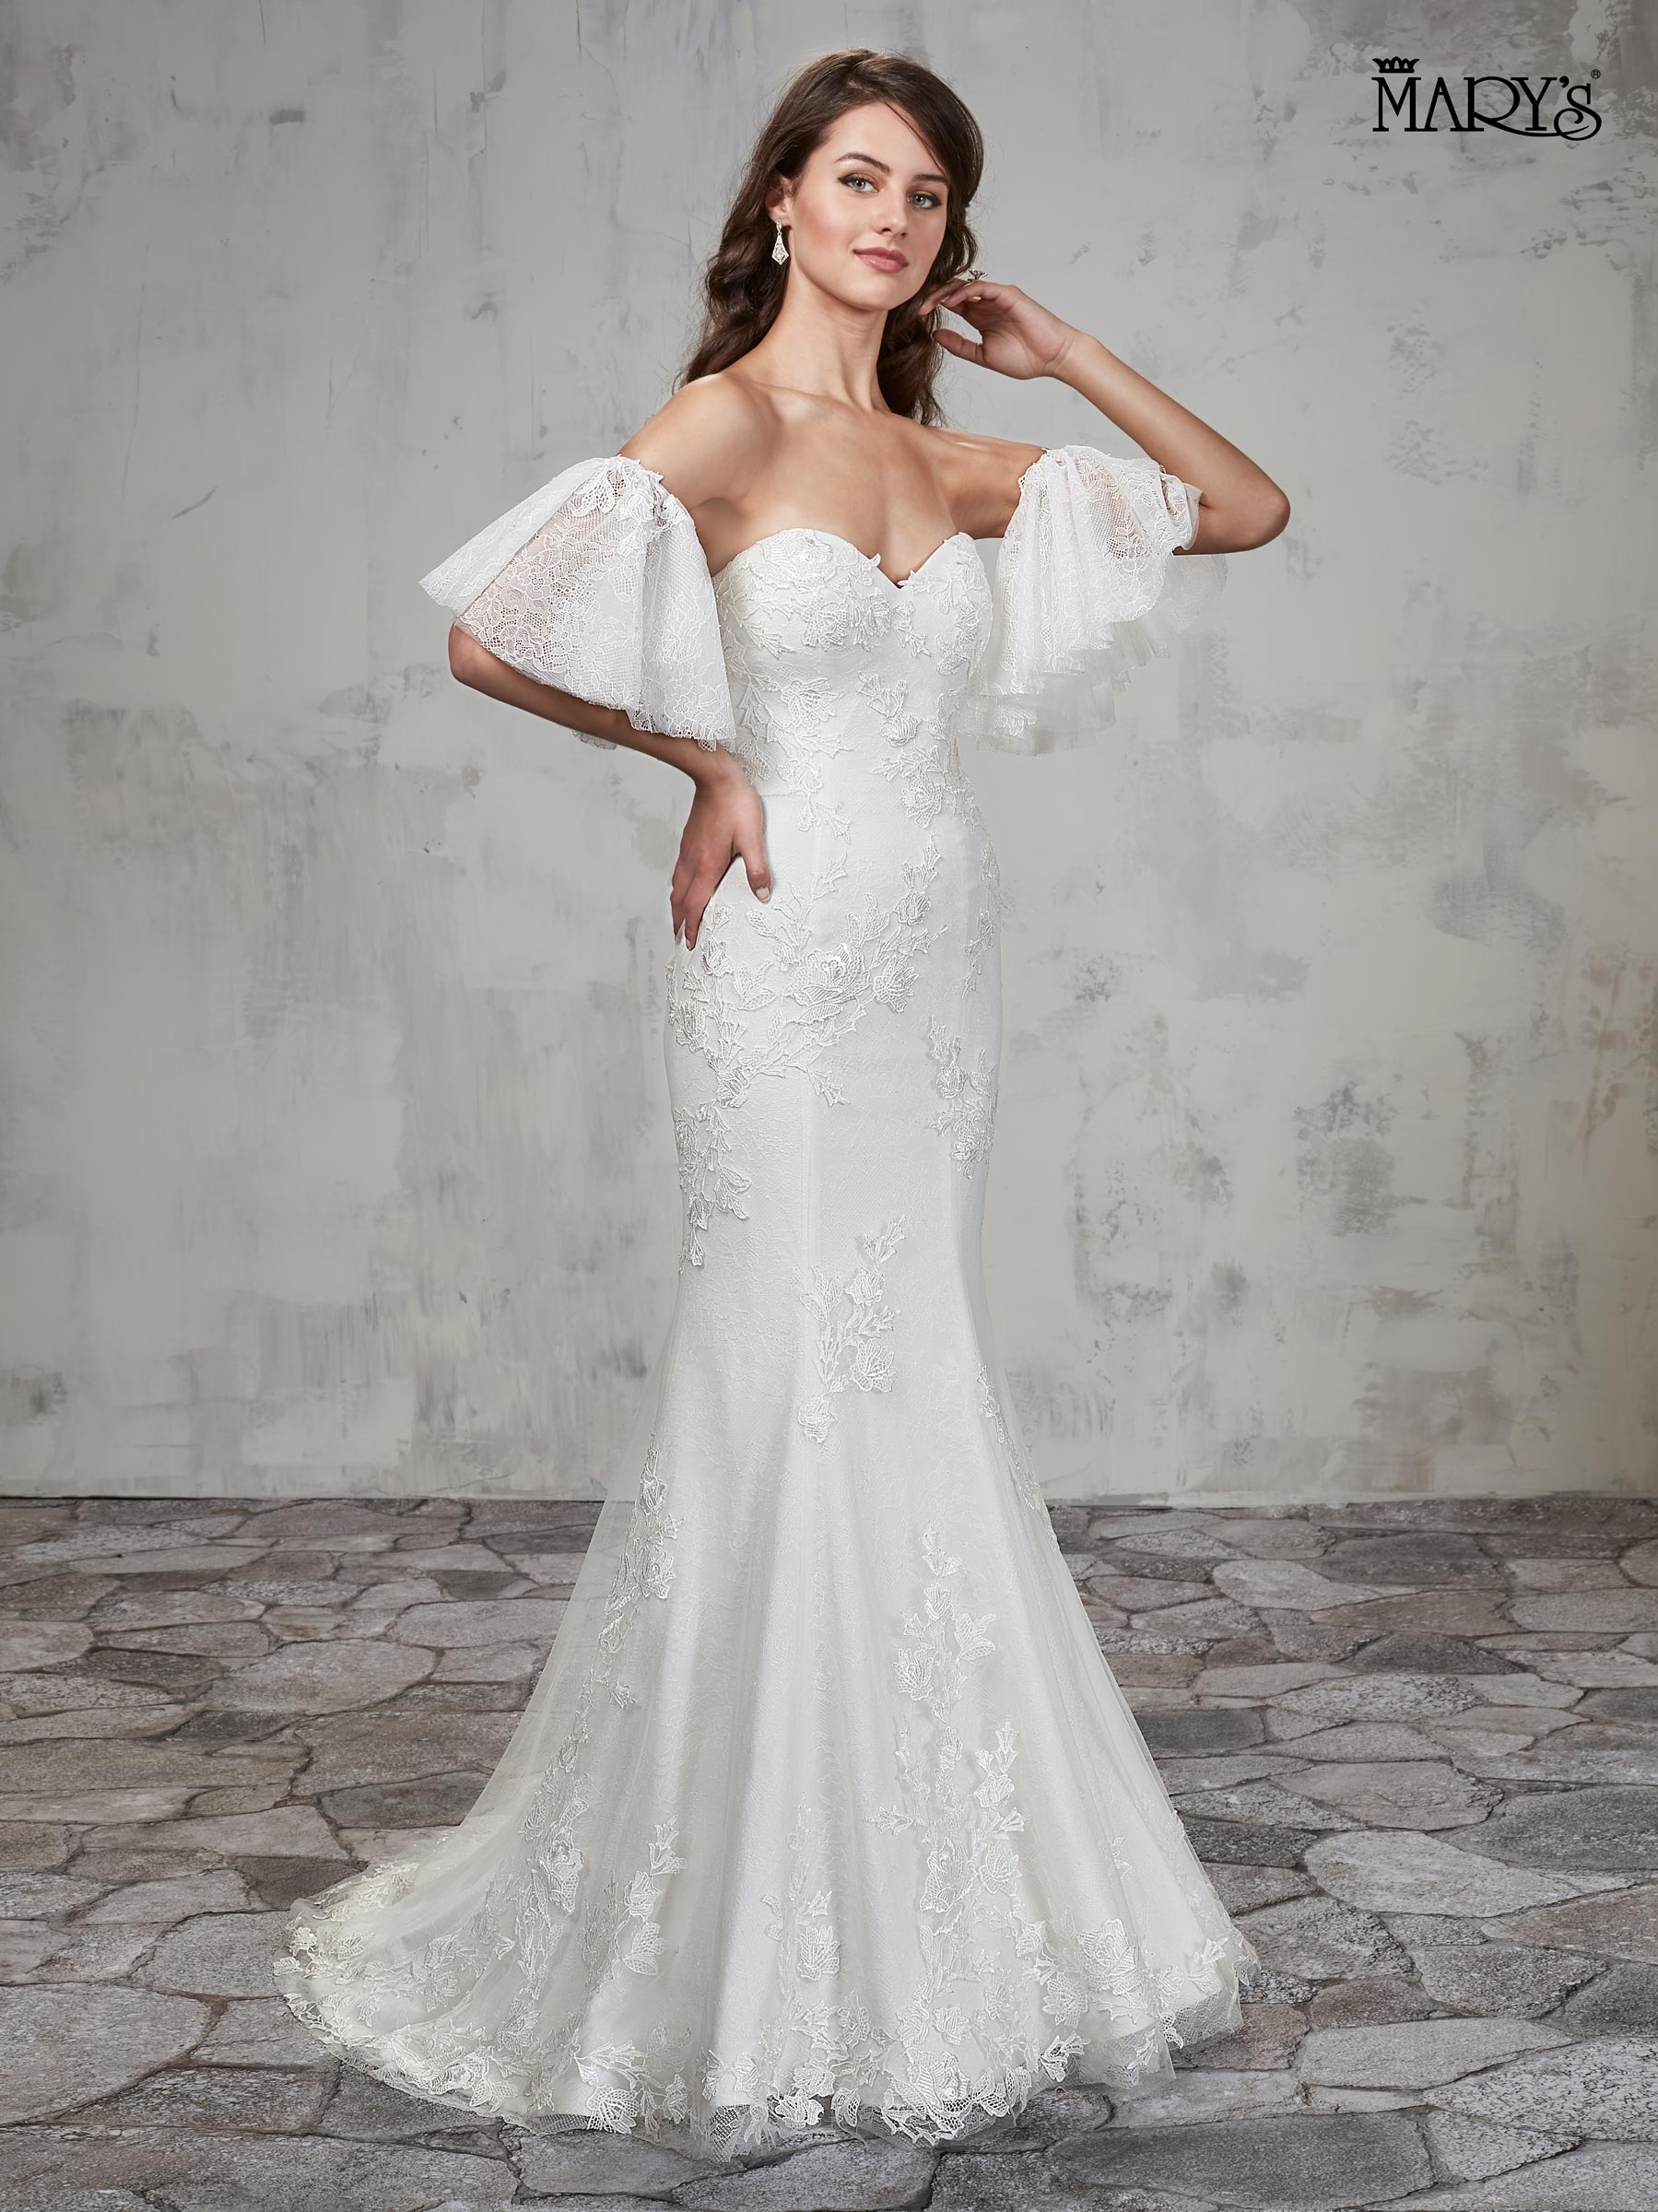 Bridal Wedding Dresses | Mary's | Style - MB3006